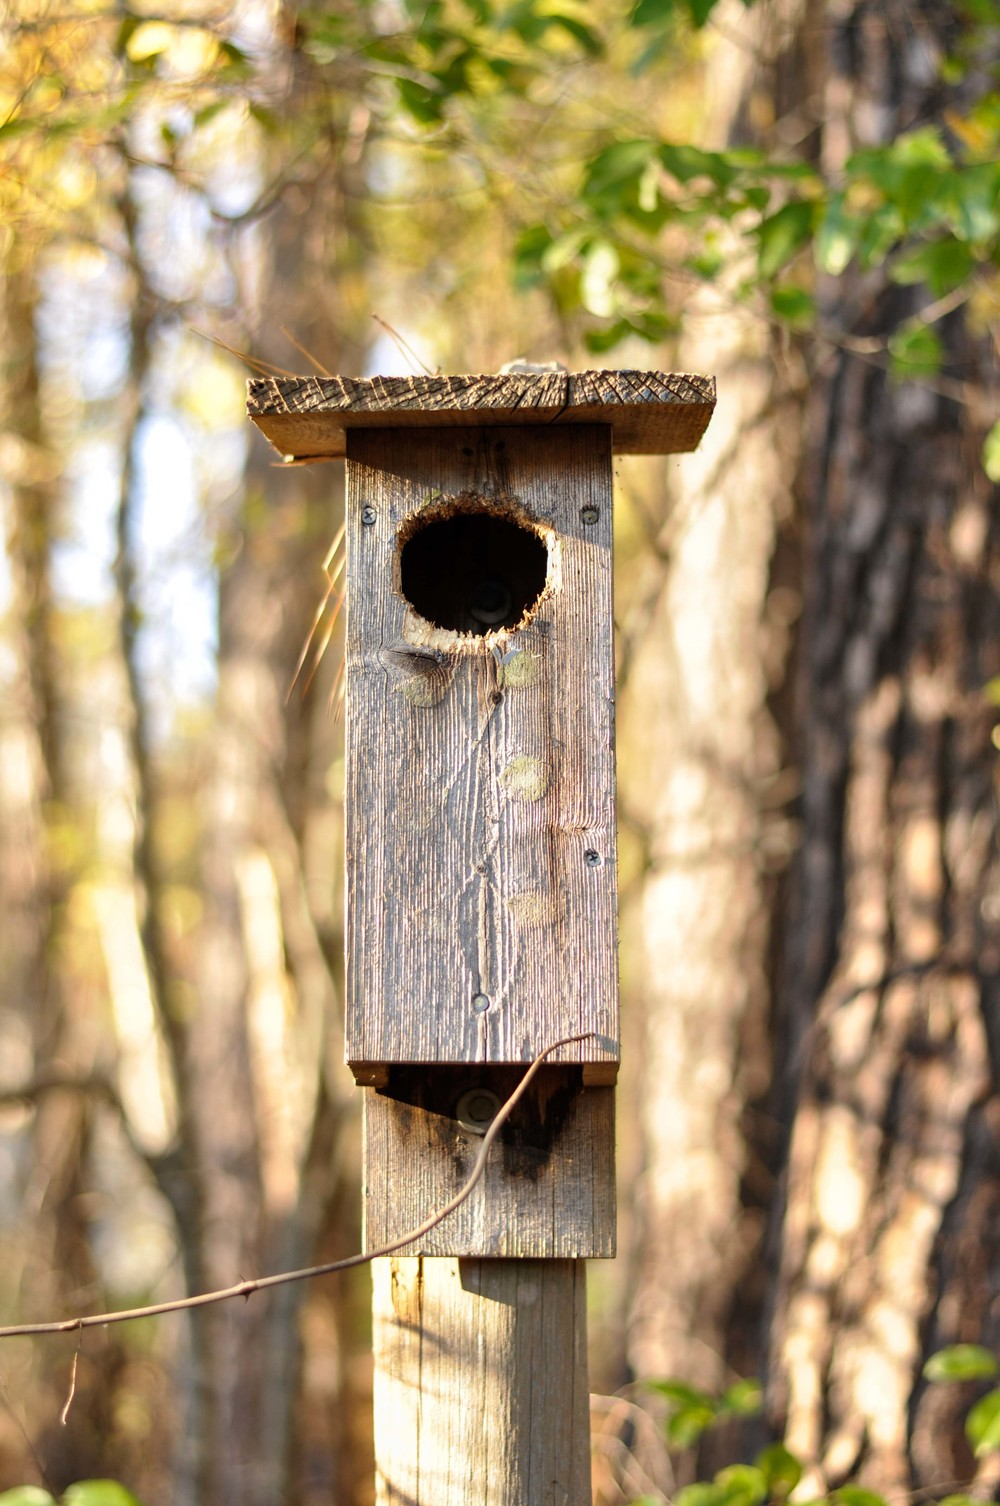 bass lake bird houses_11.jpg